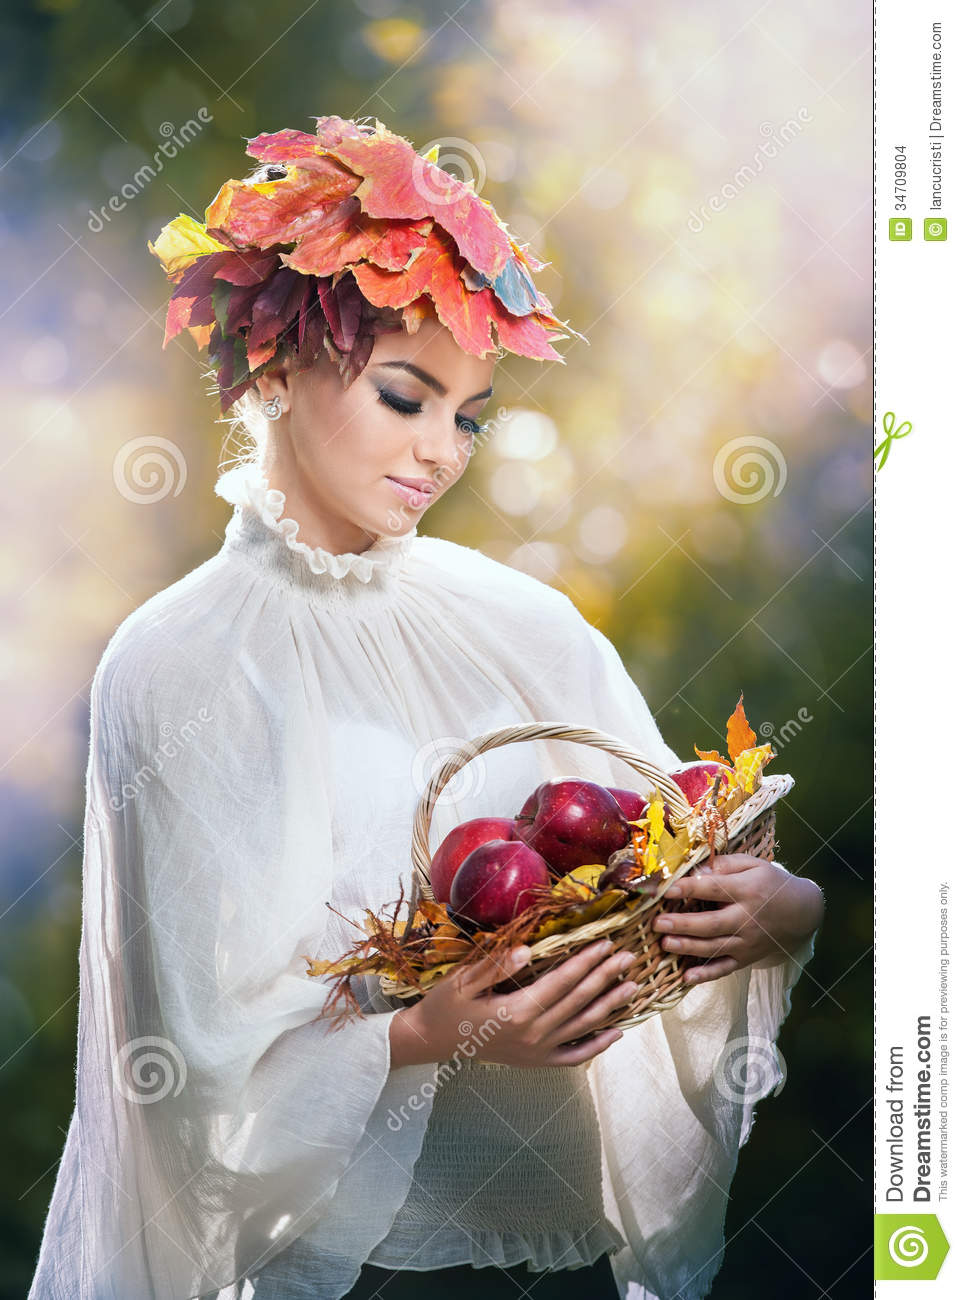 Autumn Woman Beautiful Creative Makeup And Hair Style In Outdoor Shoot Beauty Fashion Model